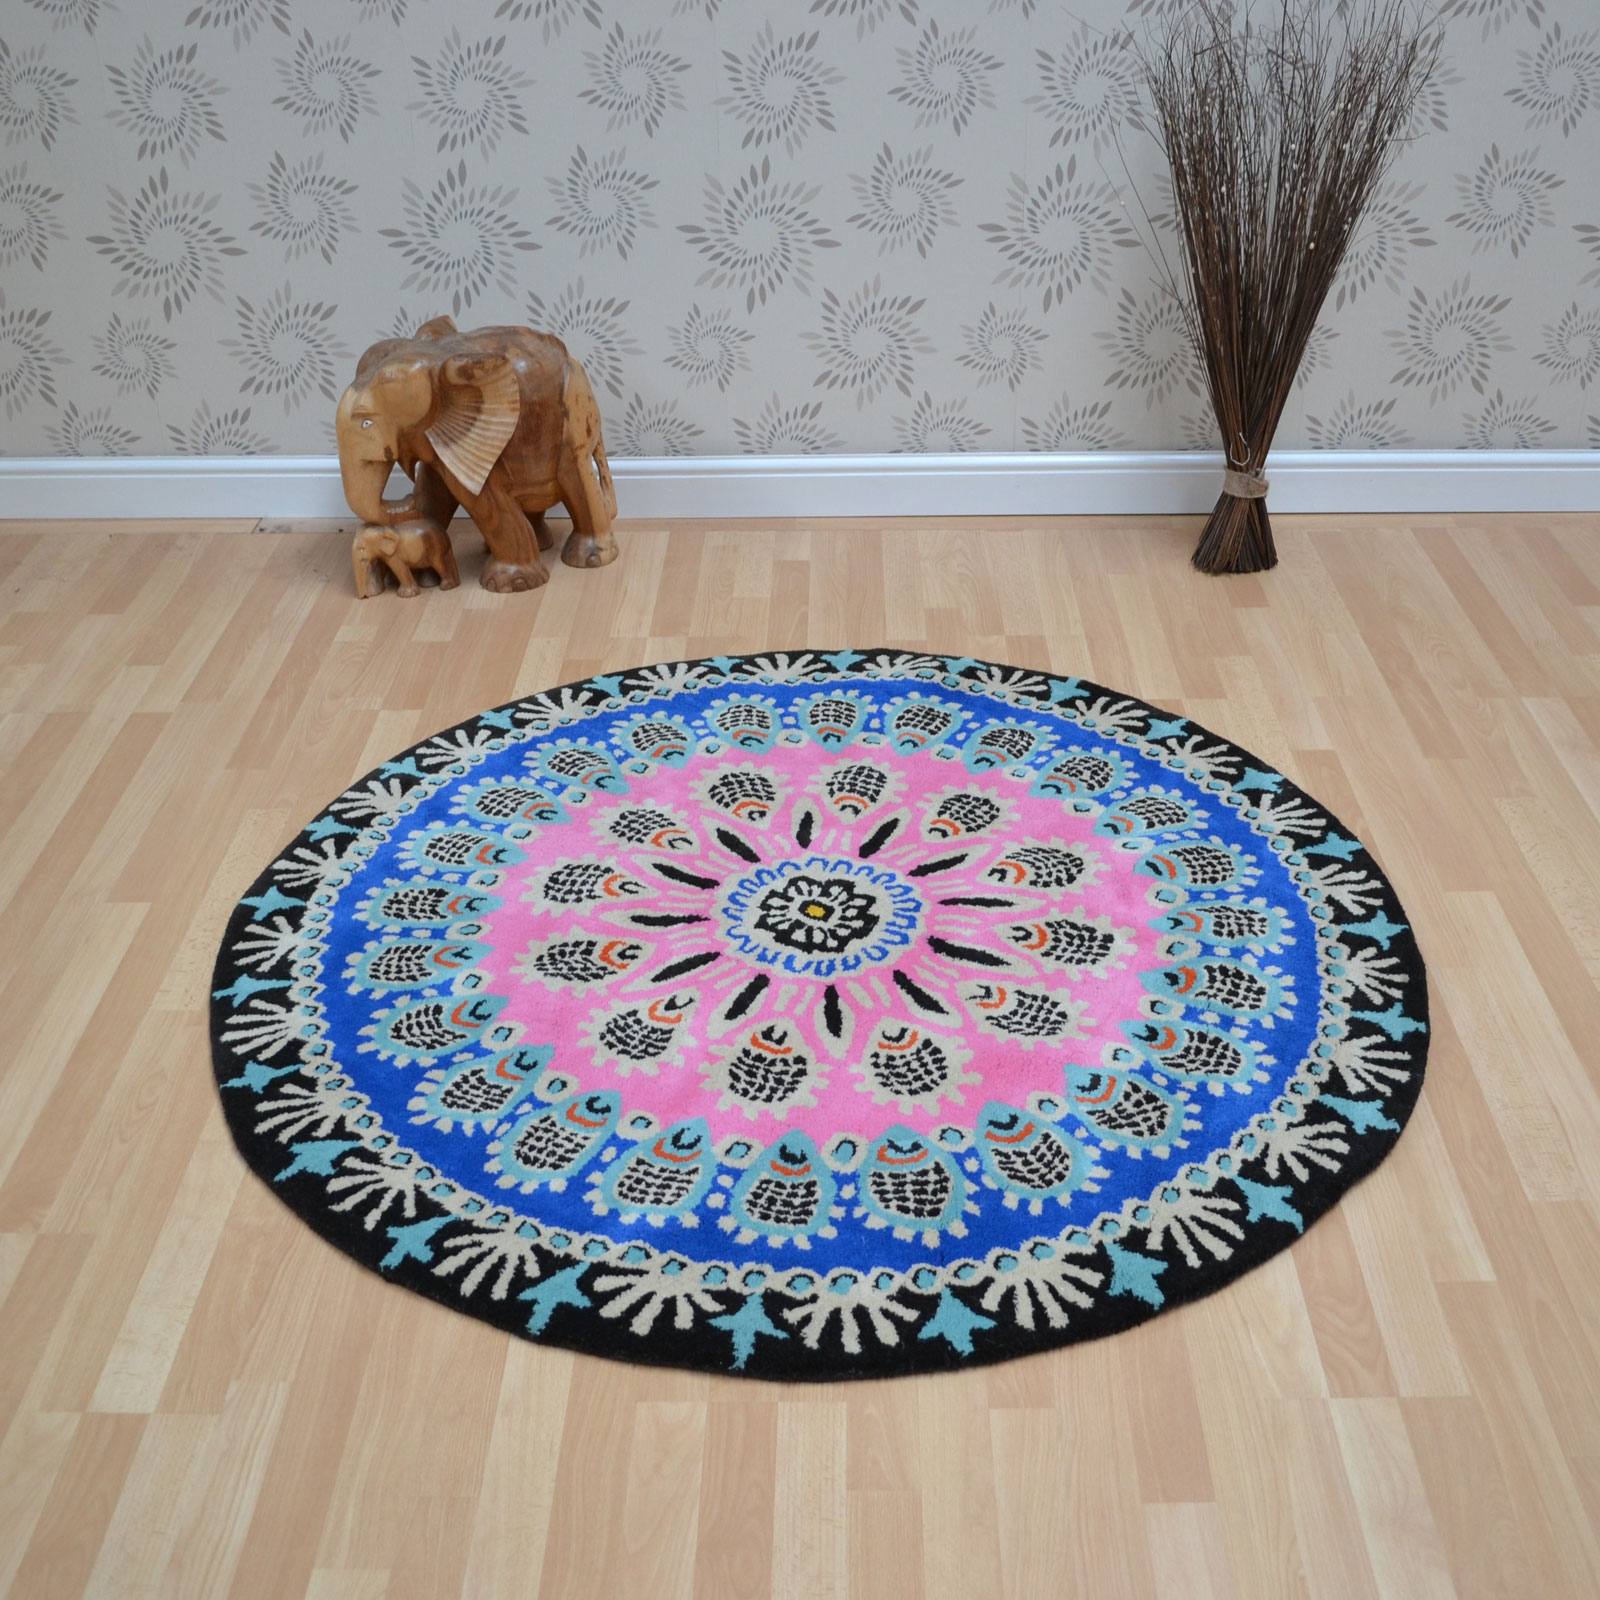 Nomadic Circular Wool Rugs Nom01 Pink More Wool Rug Ideas In Circular Wool Rugs (Image 8 of 15)